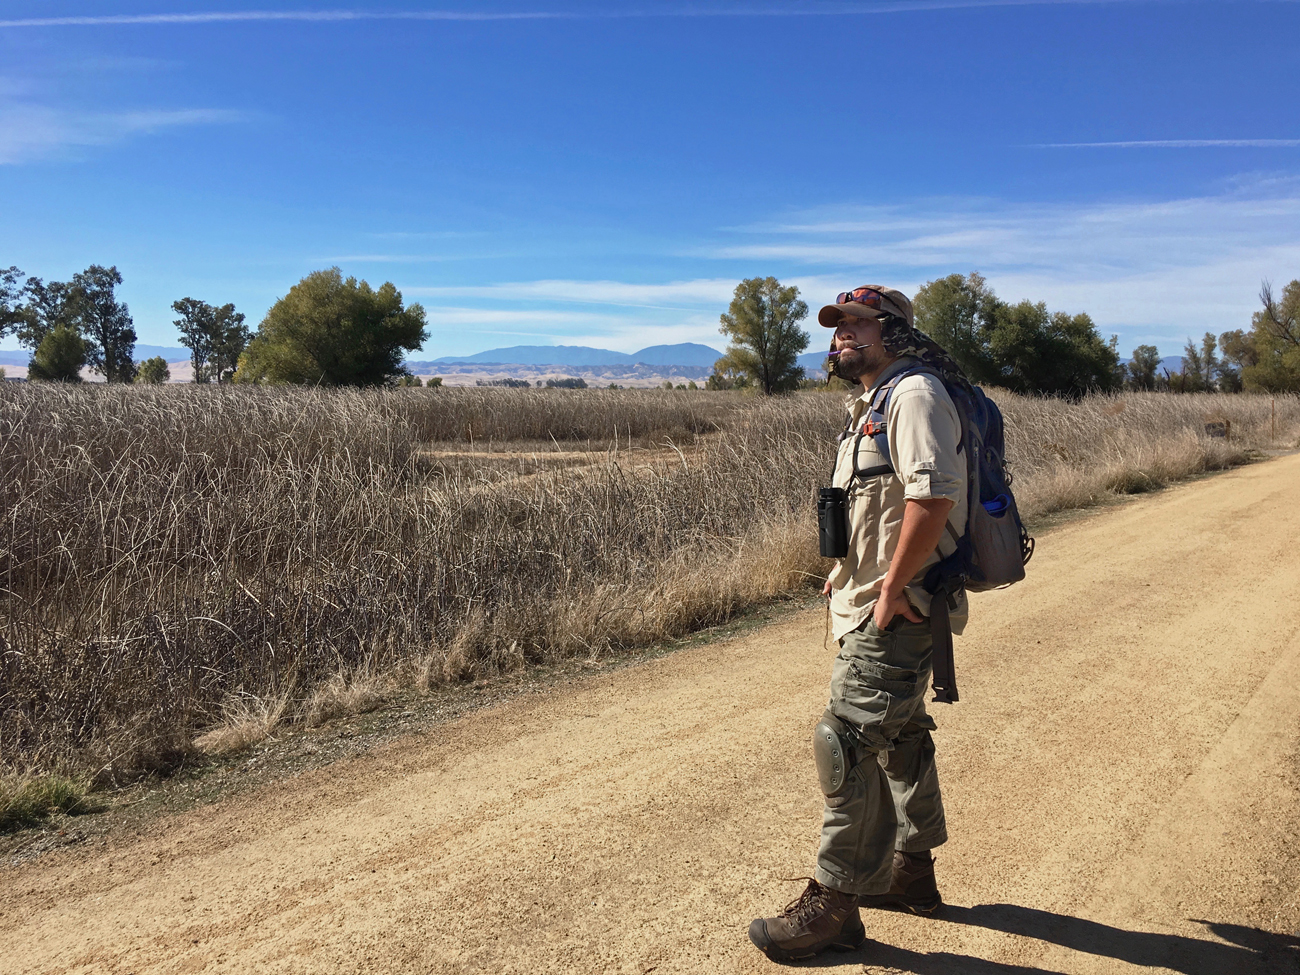 Michael all decked out in his field gear on the trail at the Sacramento NWR